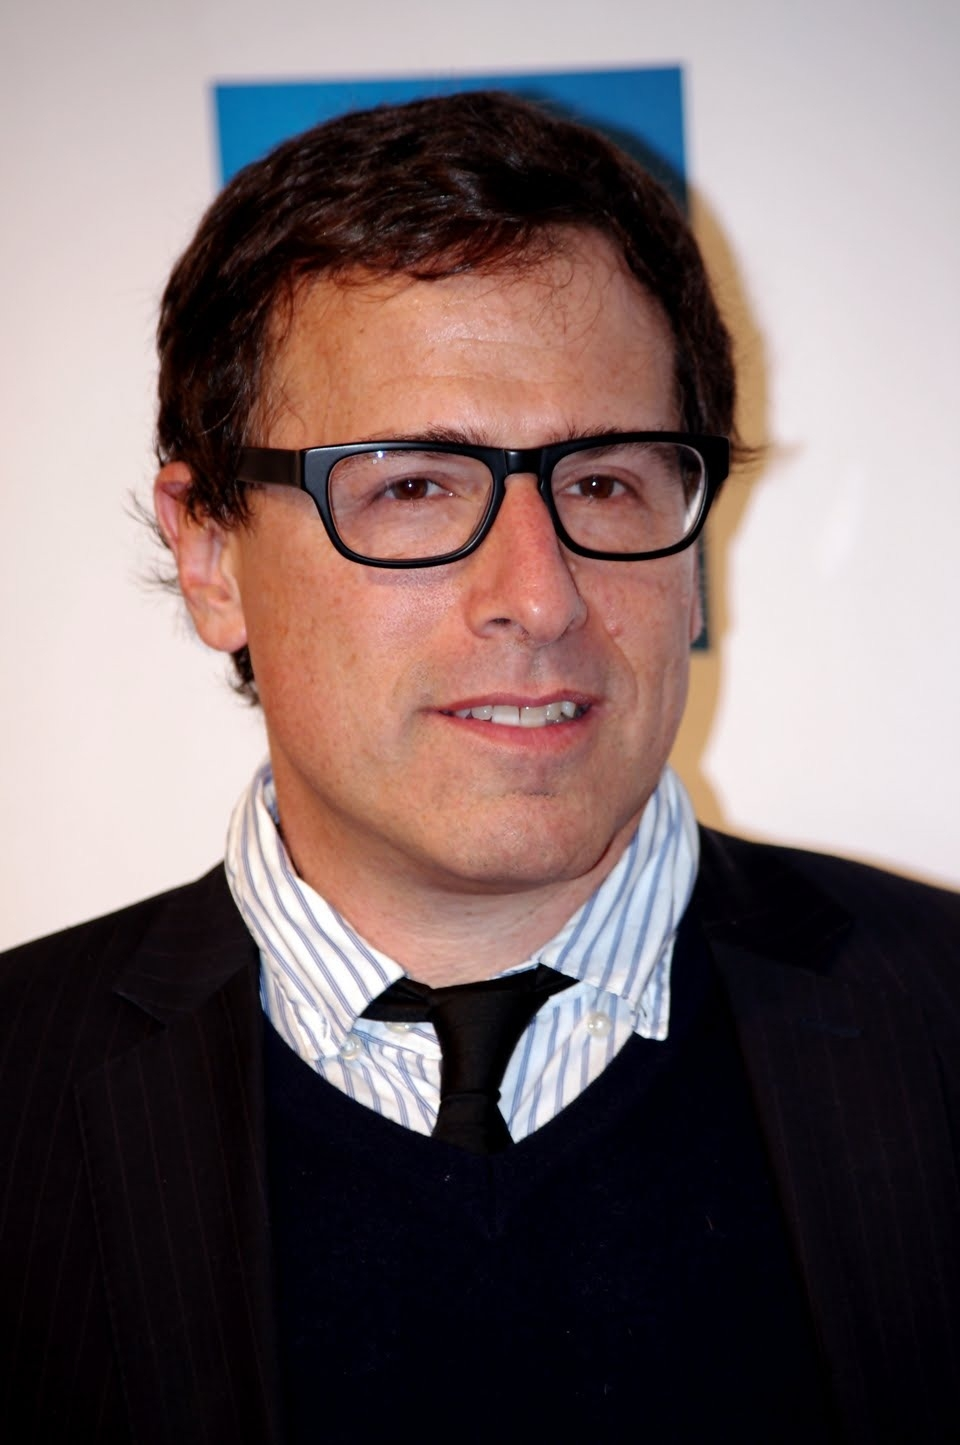 David O. Russell Net Worth